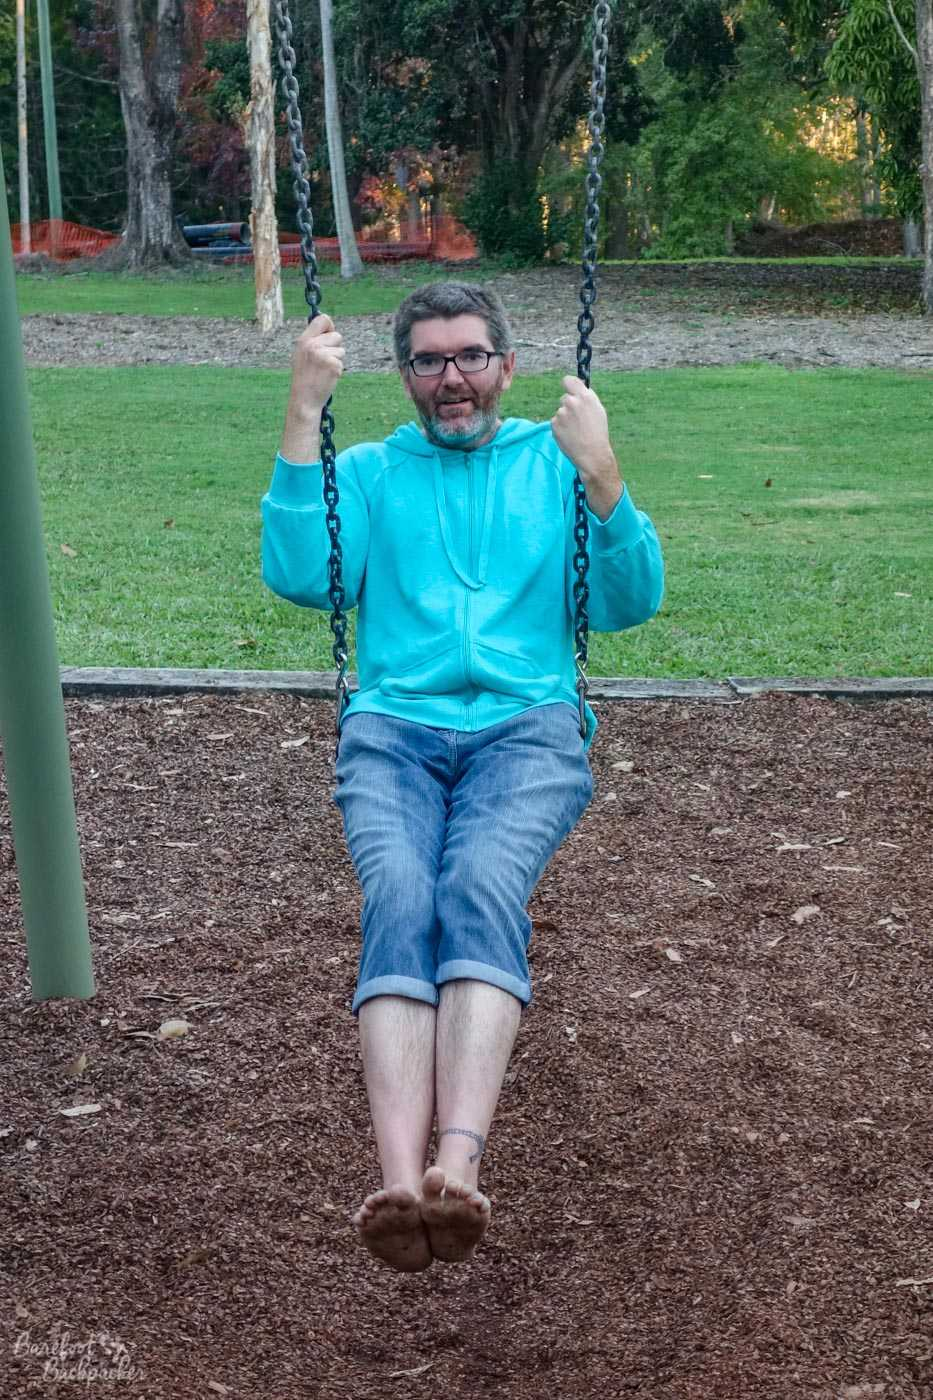 Man pretending he's still a child by playing on the swings. Barefoot, obviously.